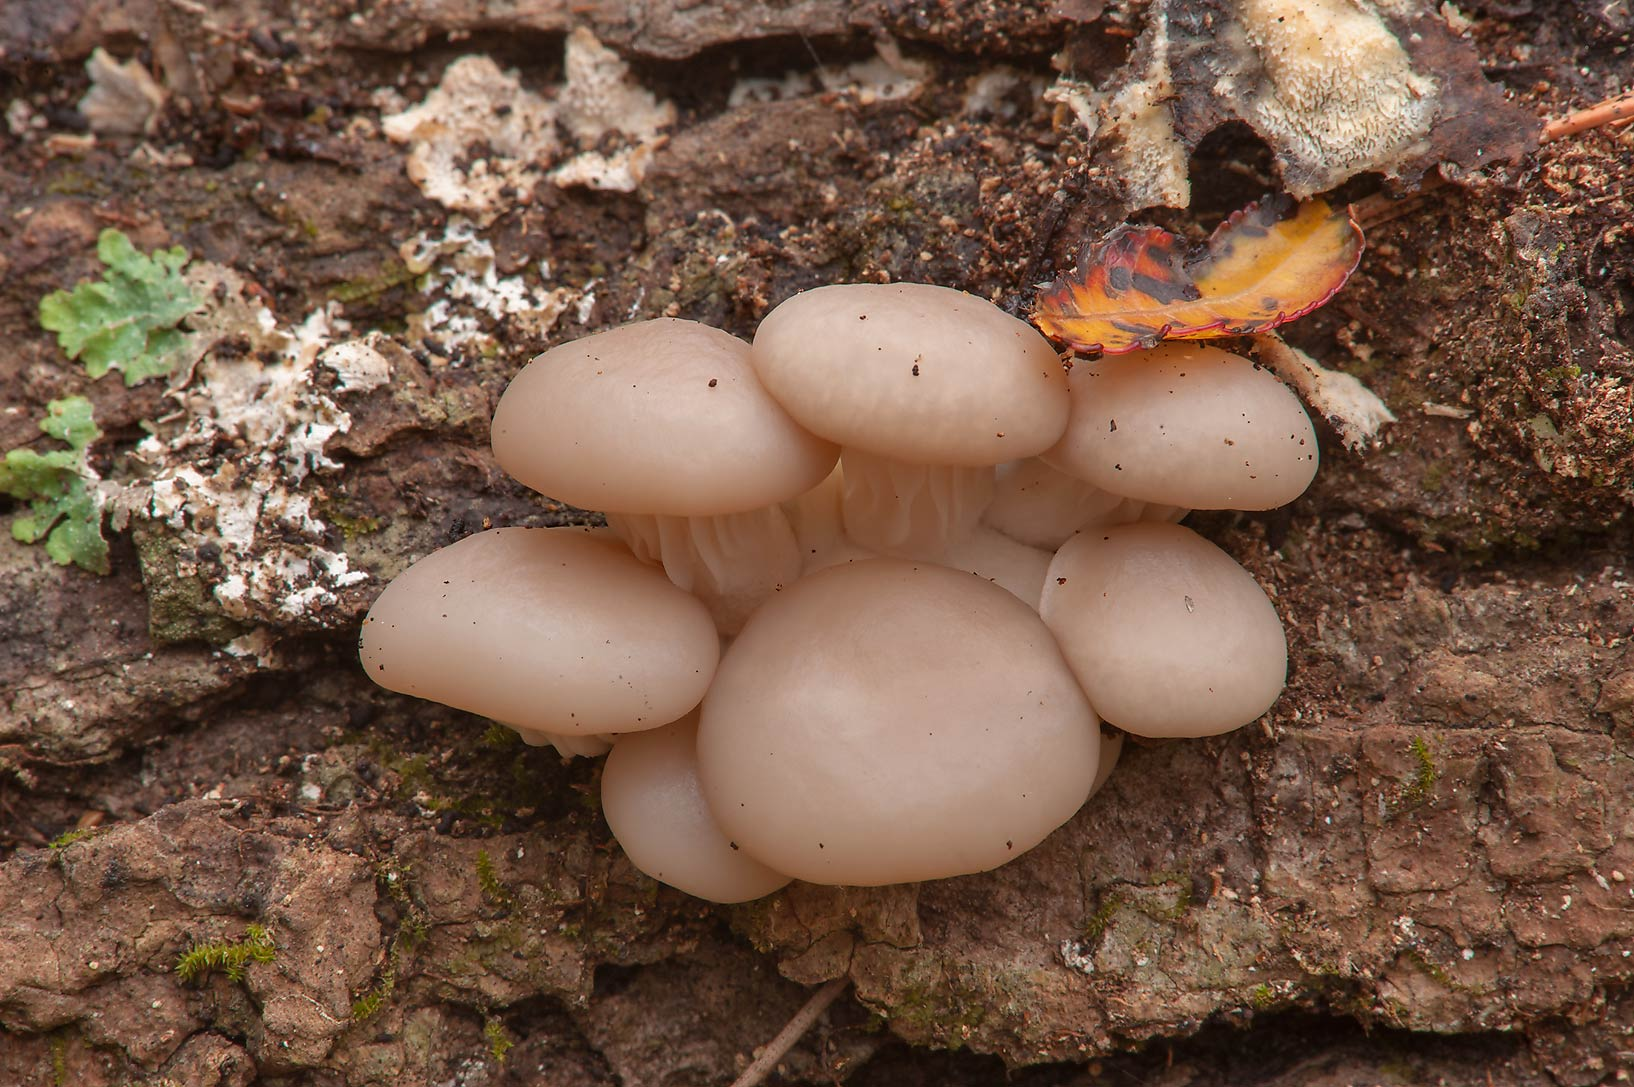 Oyster mushrooms (Pleurotus ostreatus) in Huntsville Park. Texas